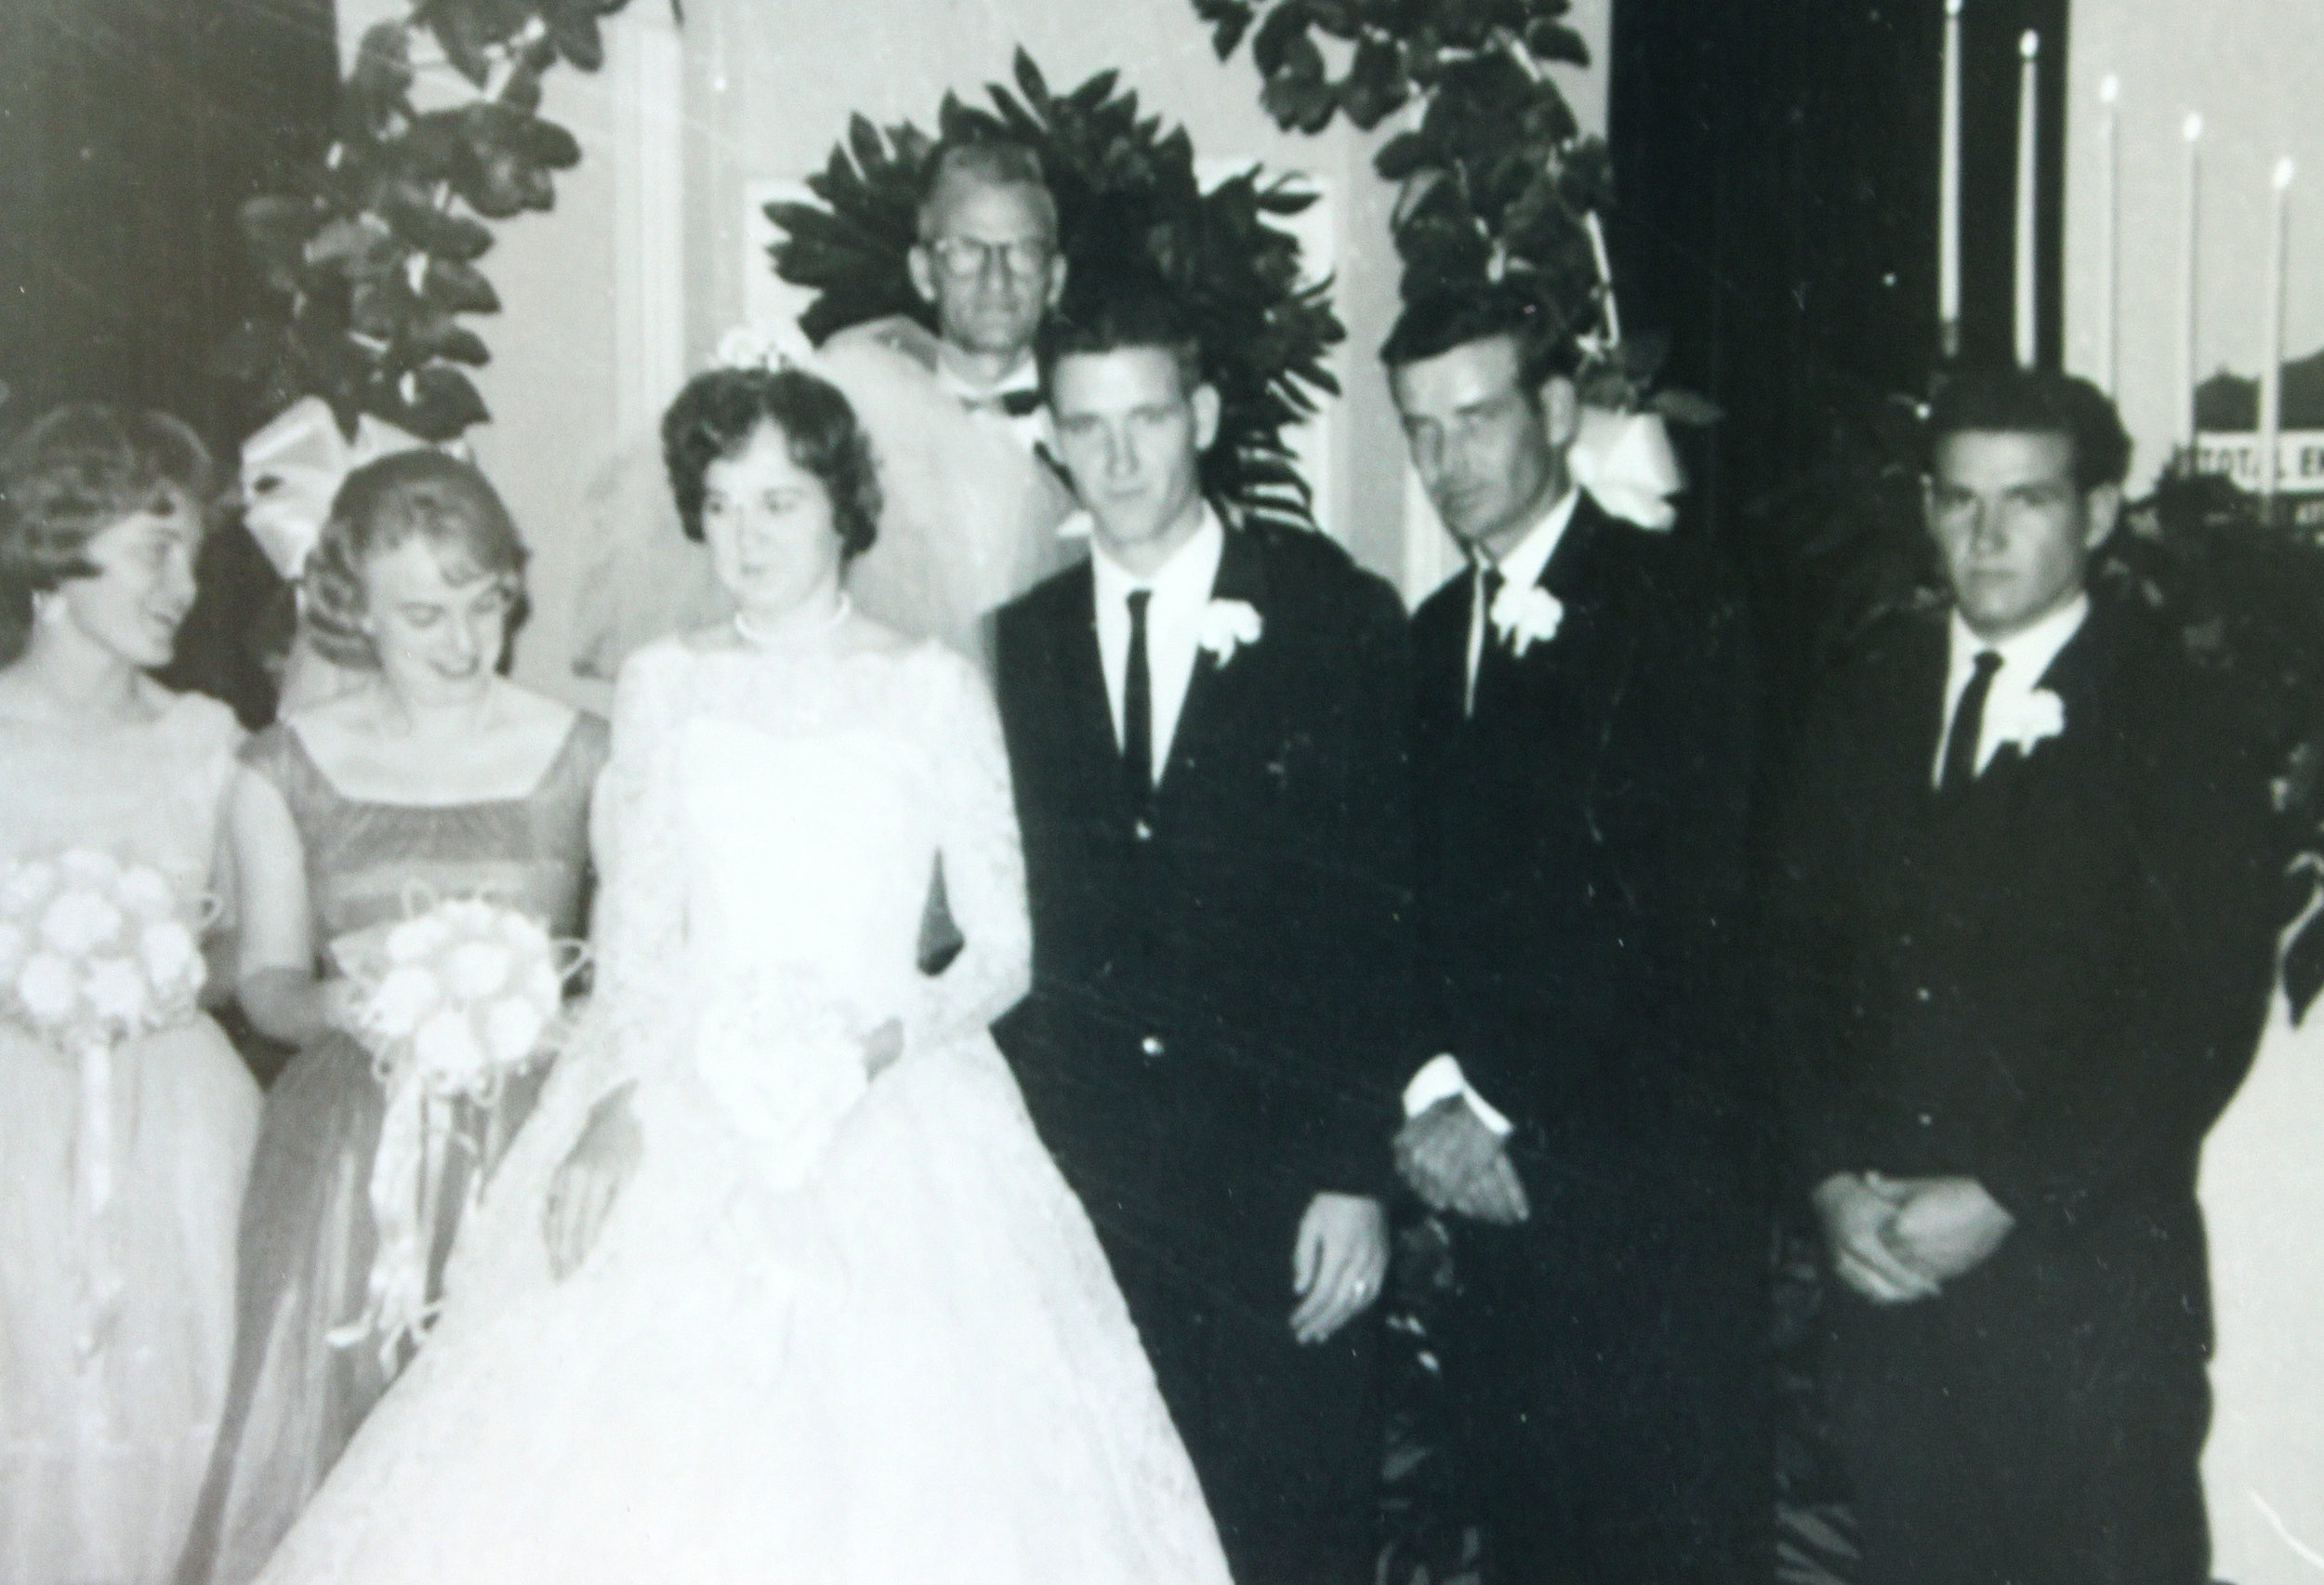 Suzanne and David on their wedding day in 1964.